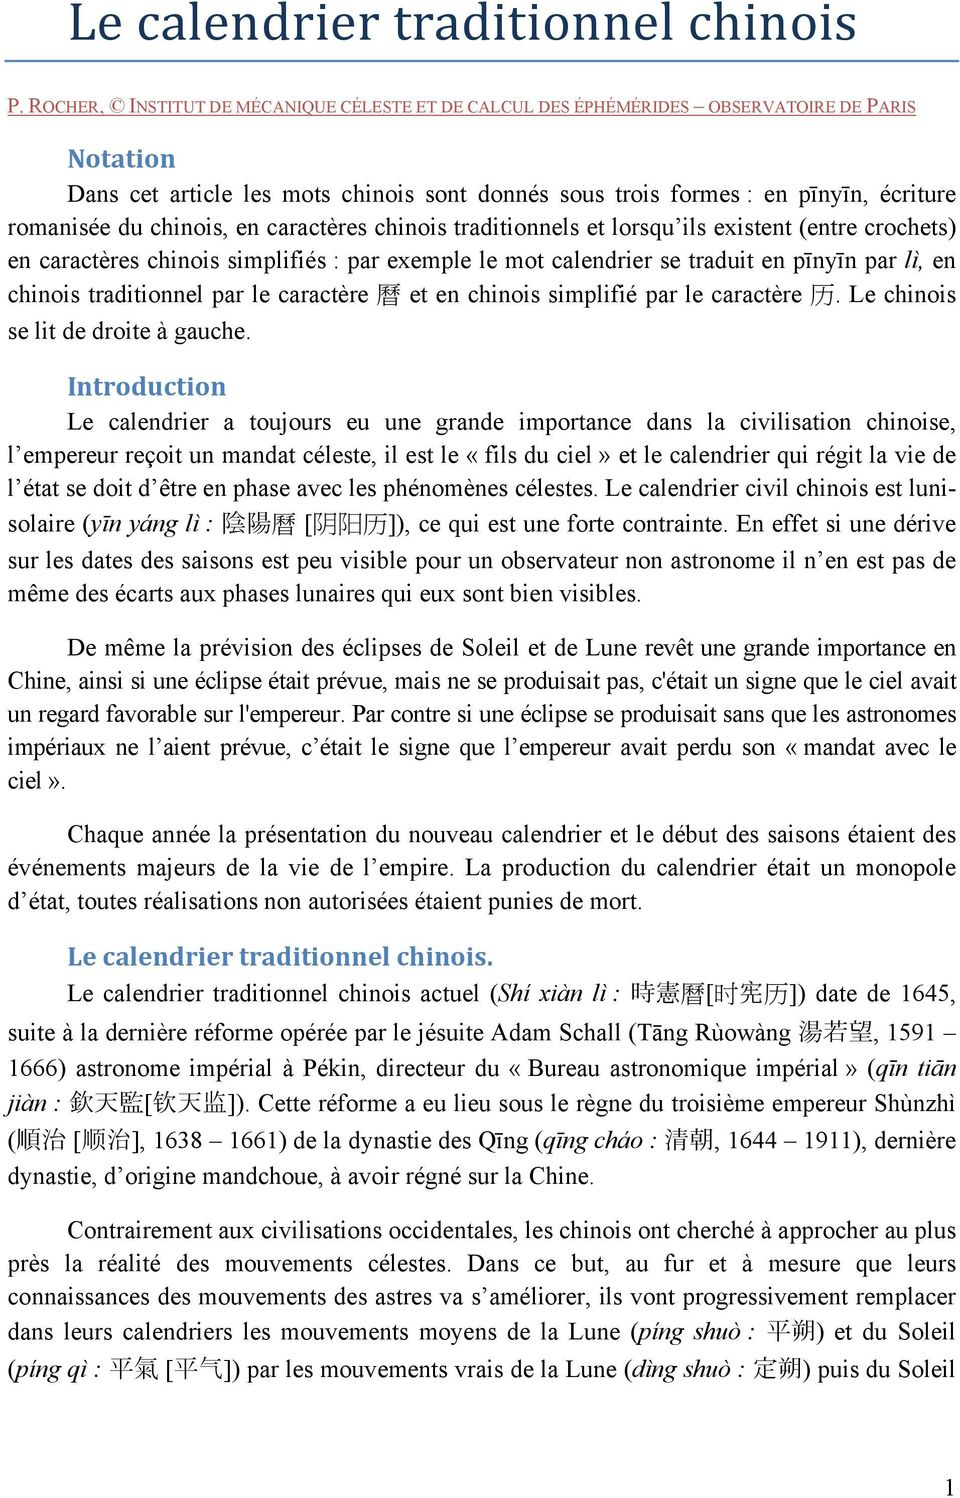 Lit Chinois But Le Calendrier Traditionnel Chinois Pdf